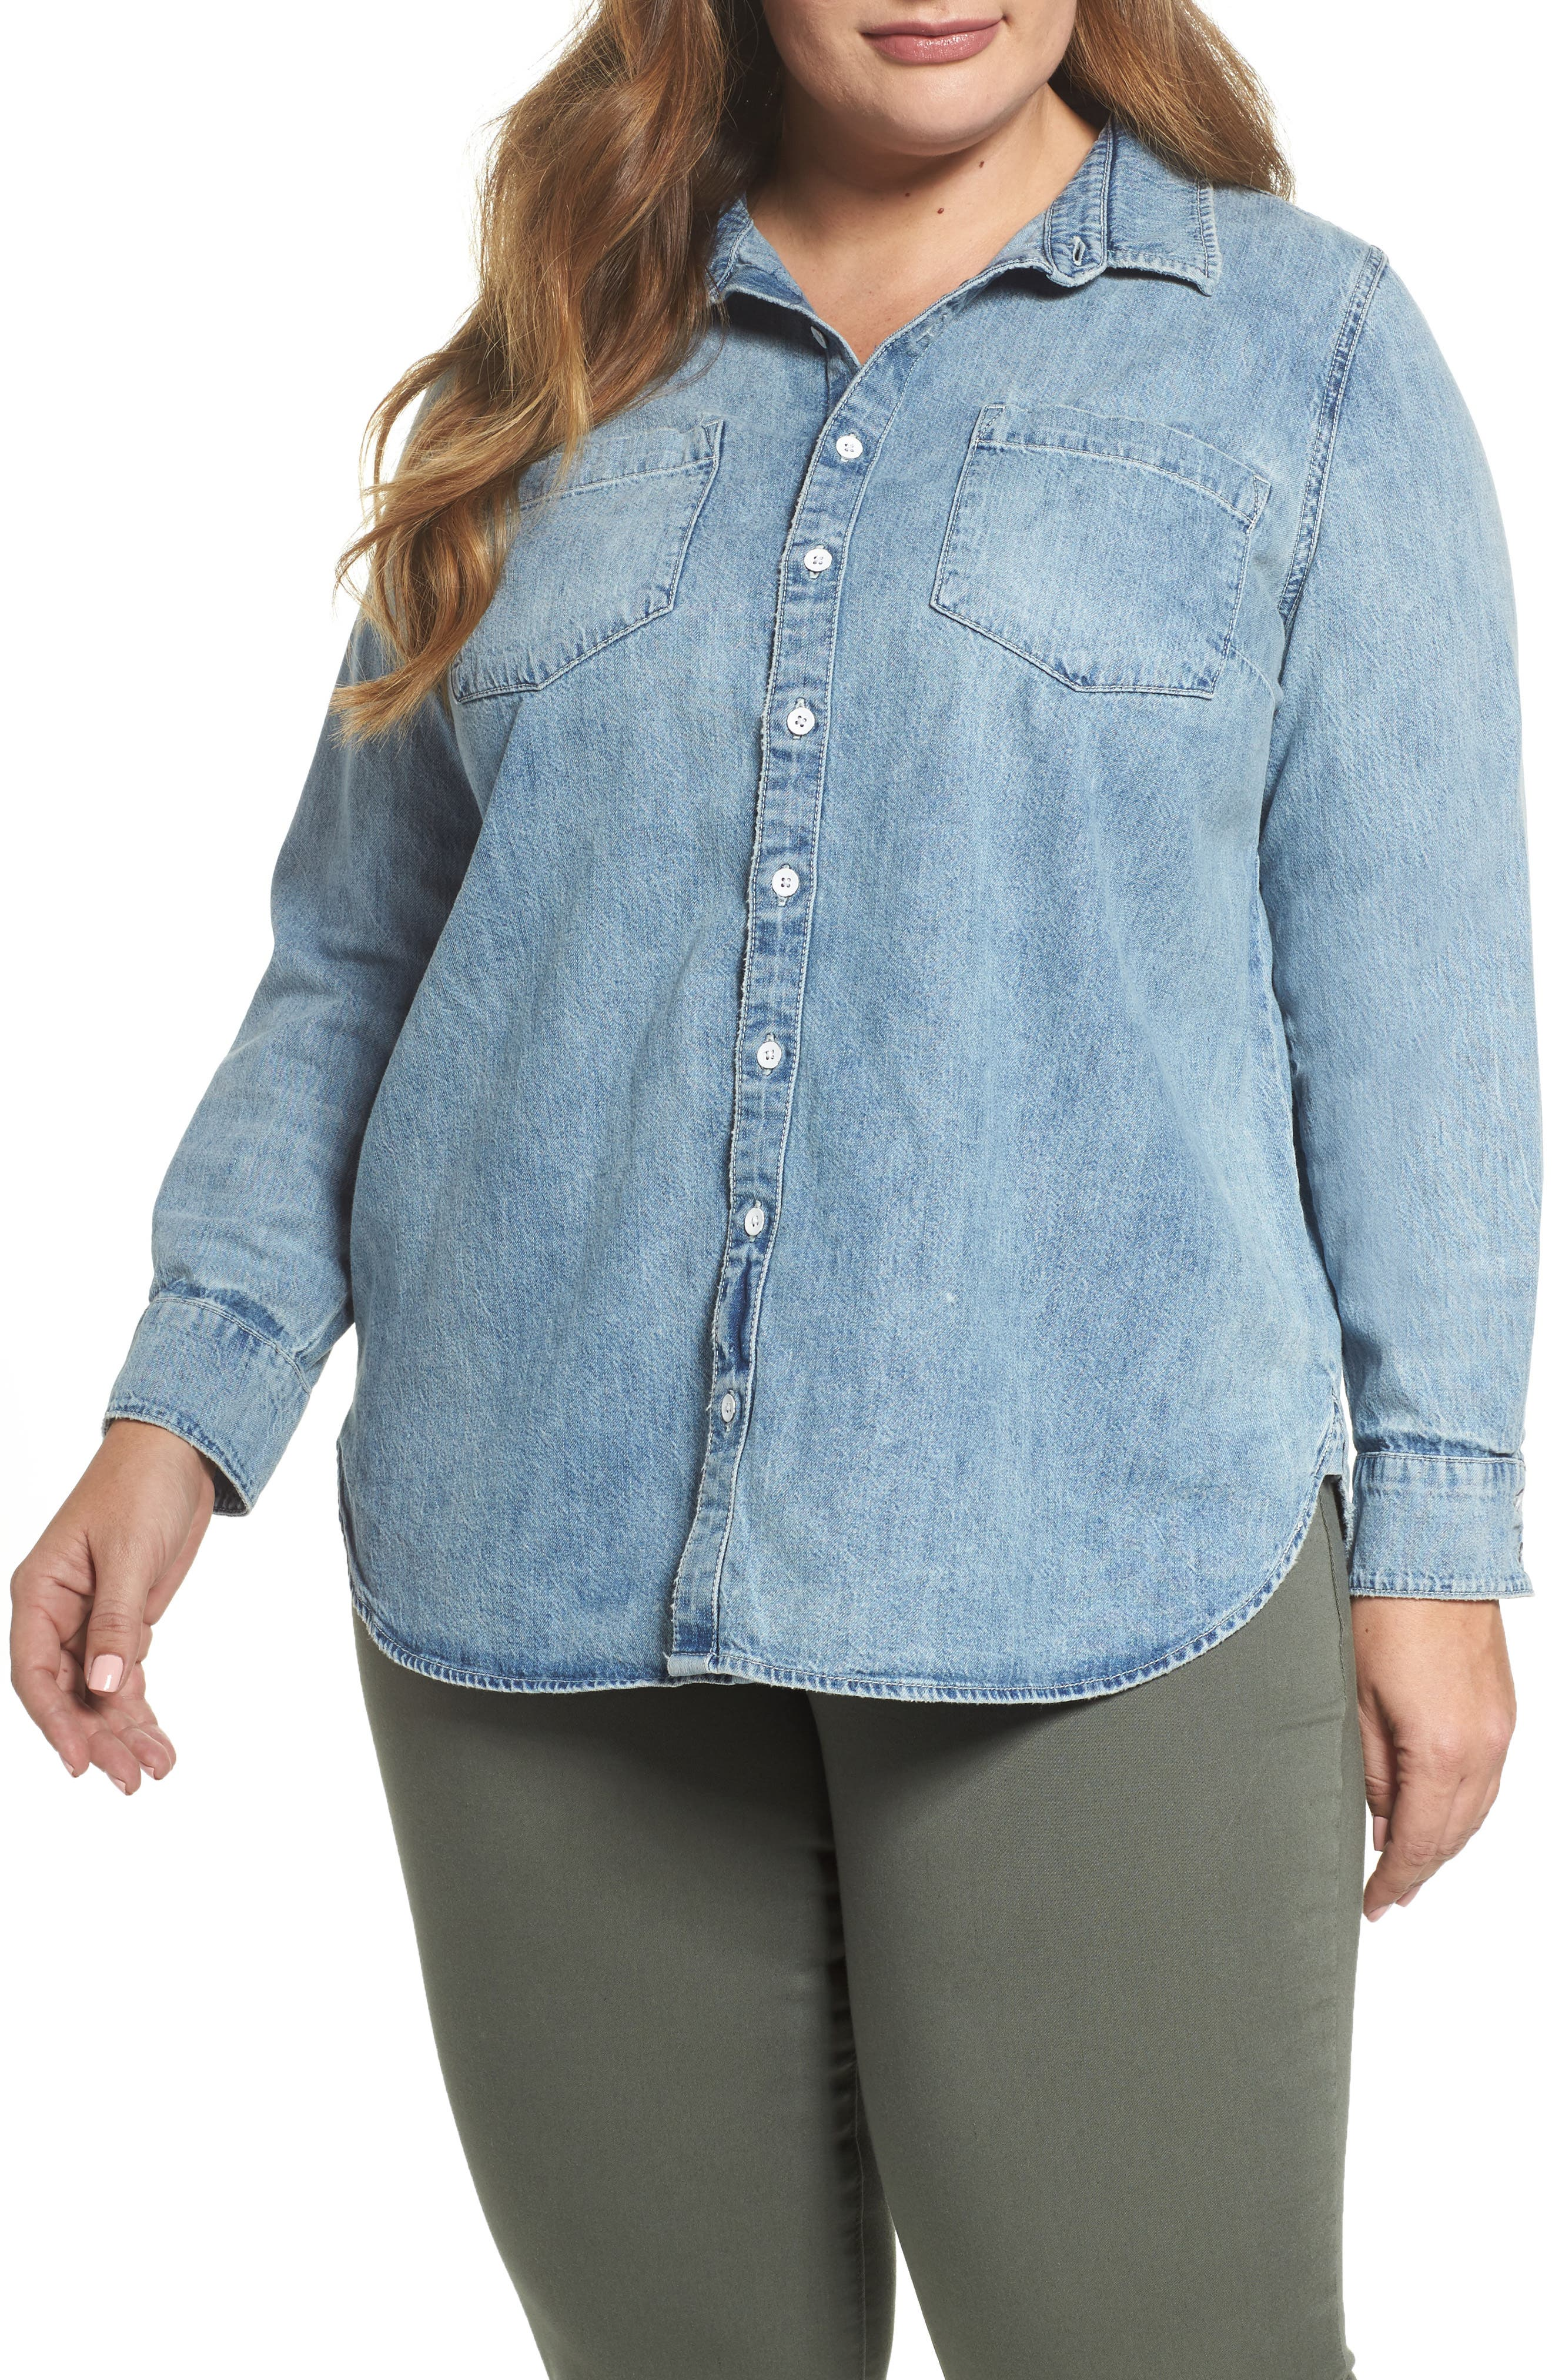 Alternate Image 1 Selected - Lucky Brand Chambray Boyfriend Shirt (Plus Size)